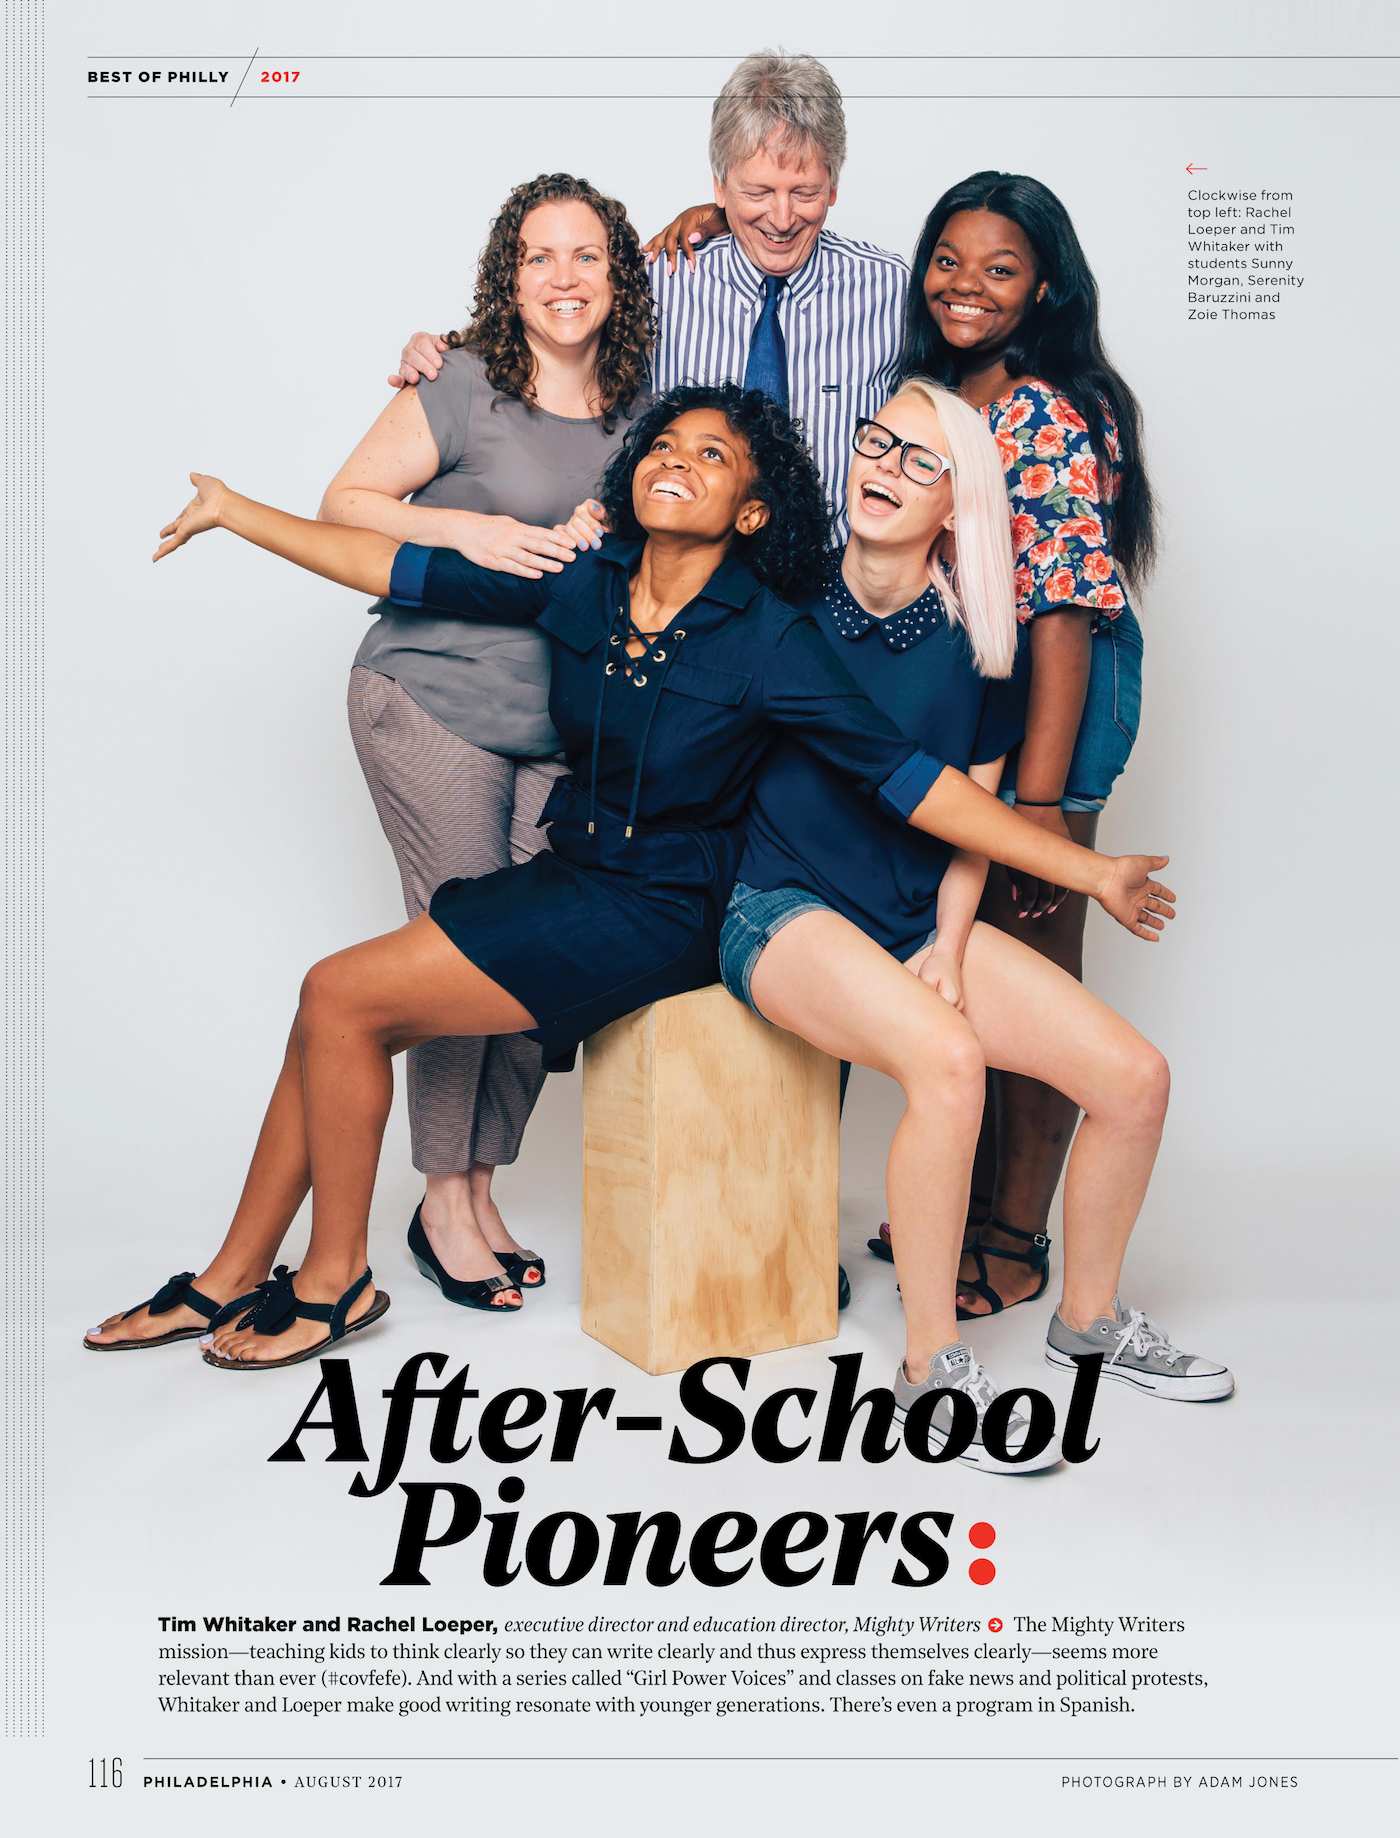 after school pioneers rdquo mighty writers awarded ldquo best of philly hot on the heels of praise from the new yorker and npr philadelphia magazine just awarded education non profit mighty writers as the best